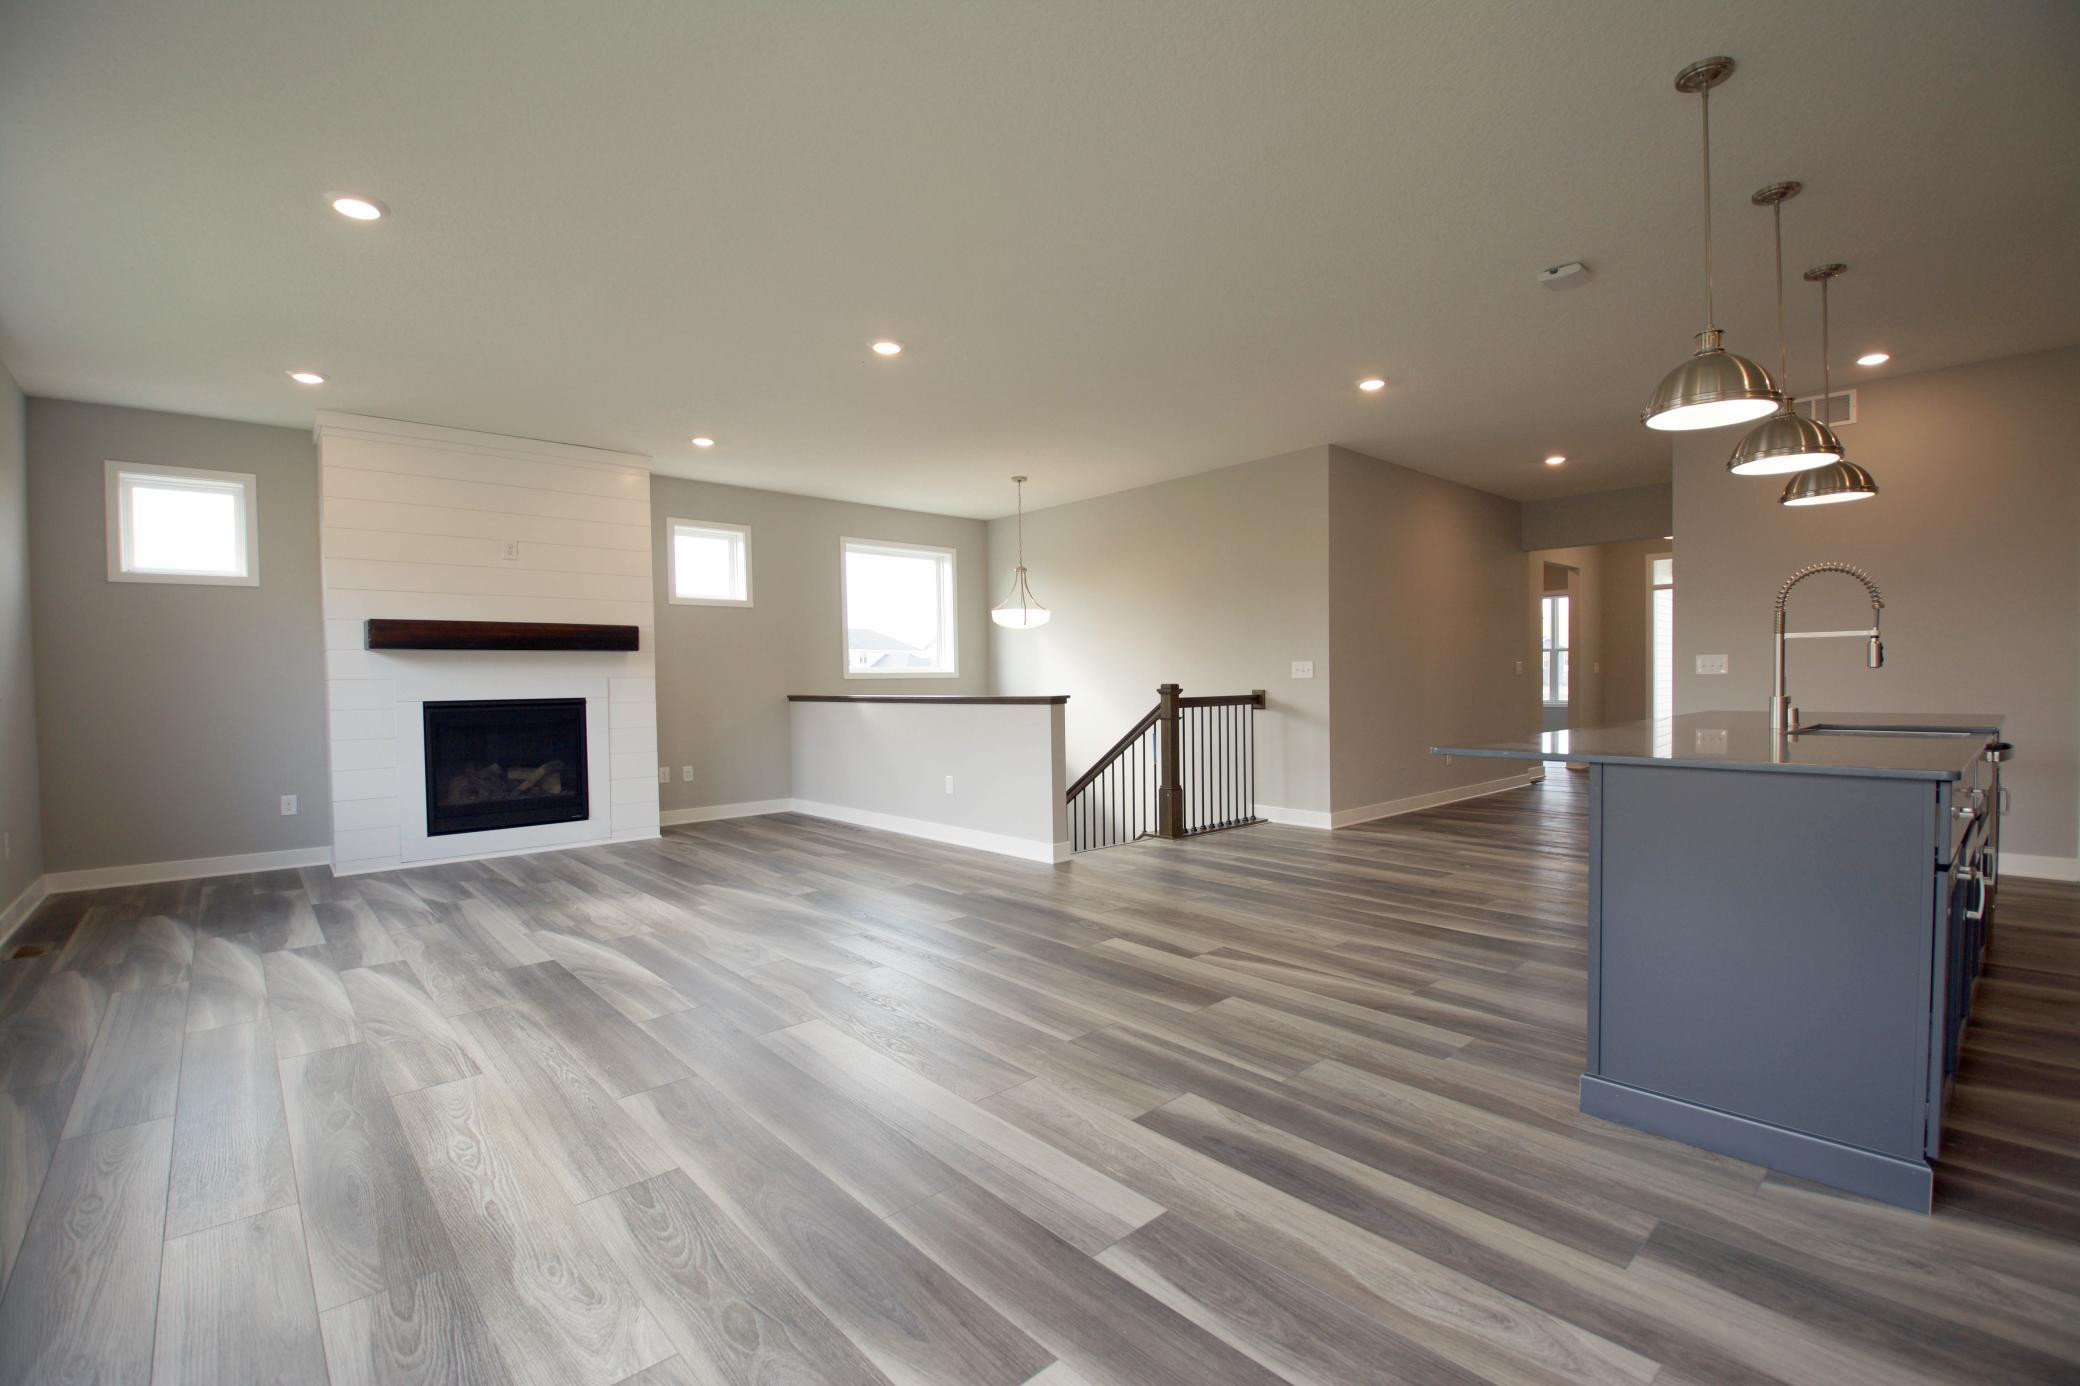 Welcome! Enjoy this amazing 3 bdrm home that has so much to offer! The stately features, including the upgraded plank flooring that is tolerant to water & scratches, along w/the shiplap fireplace & beautiful homesite allows this home to shine.